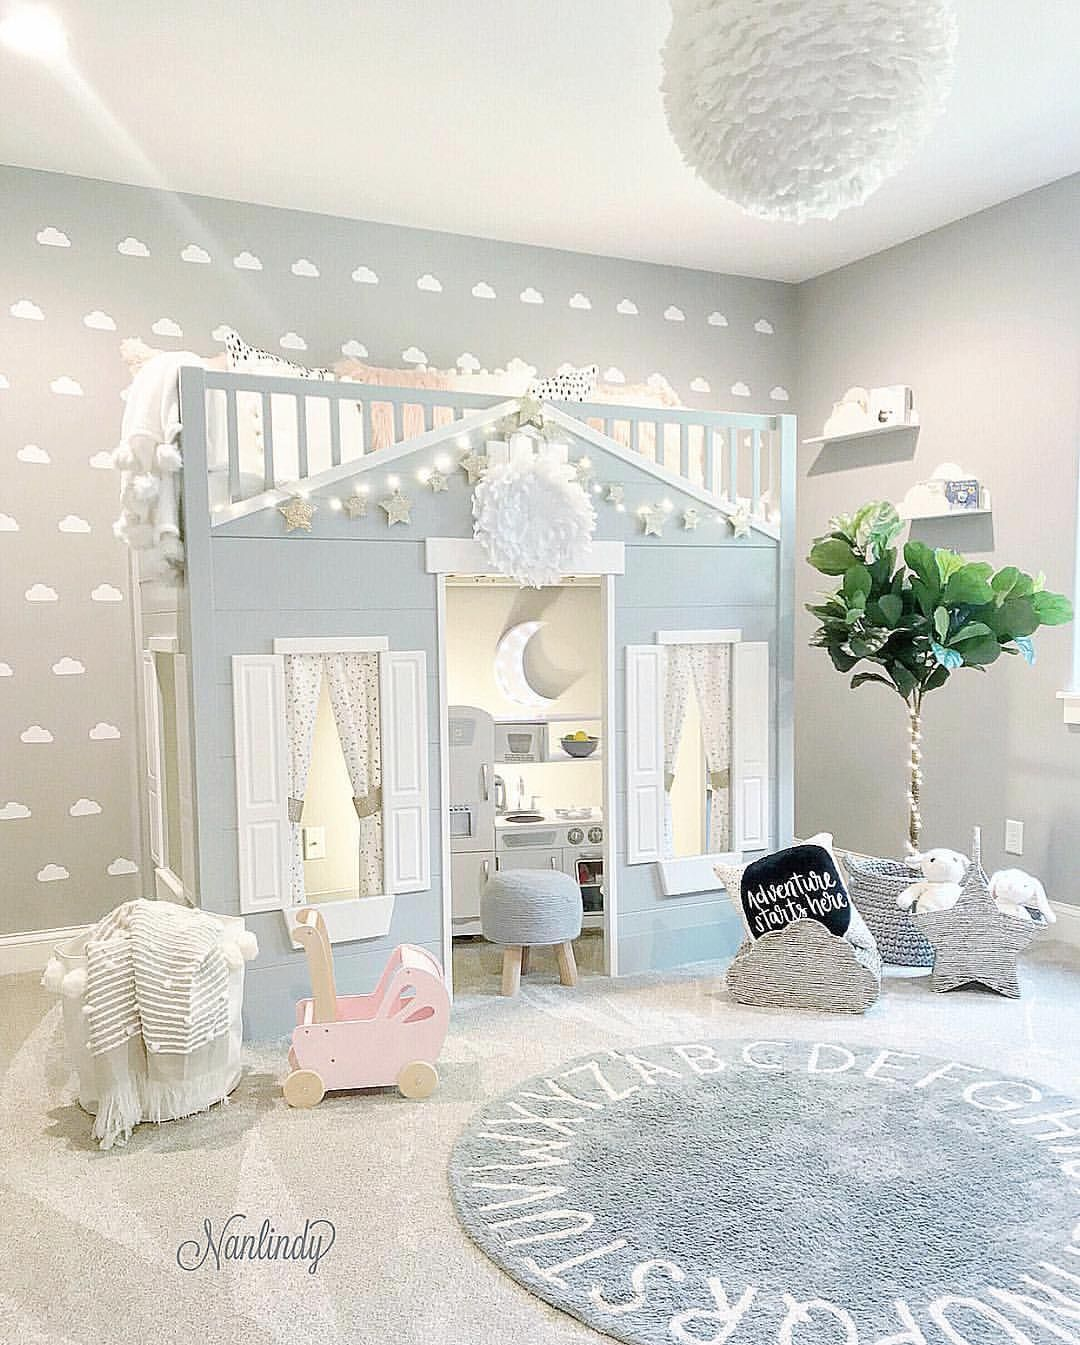 Check Out This Absolutely Stunning Playroom Design By @nanlindy